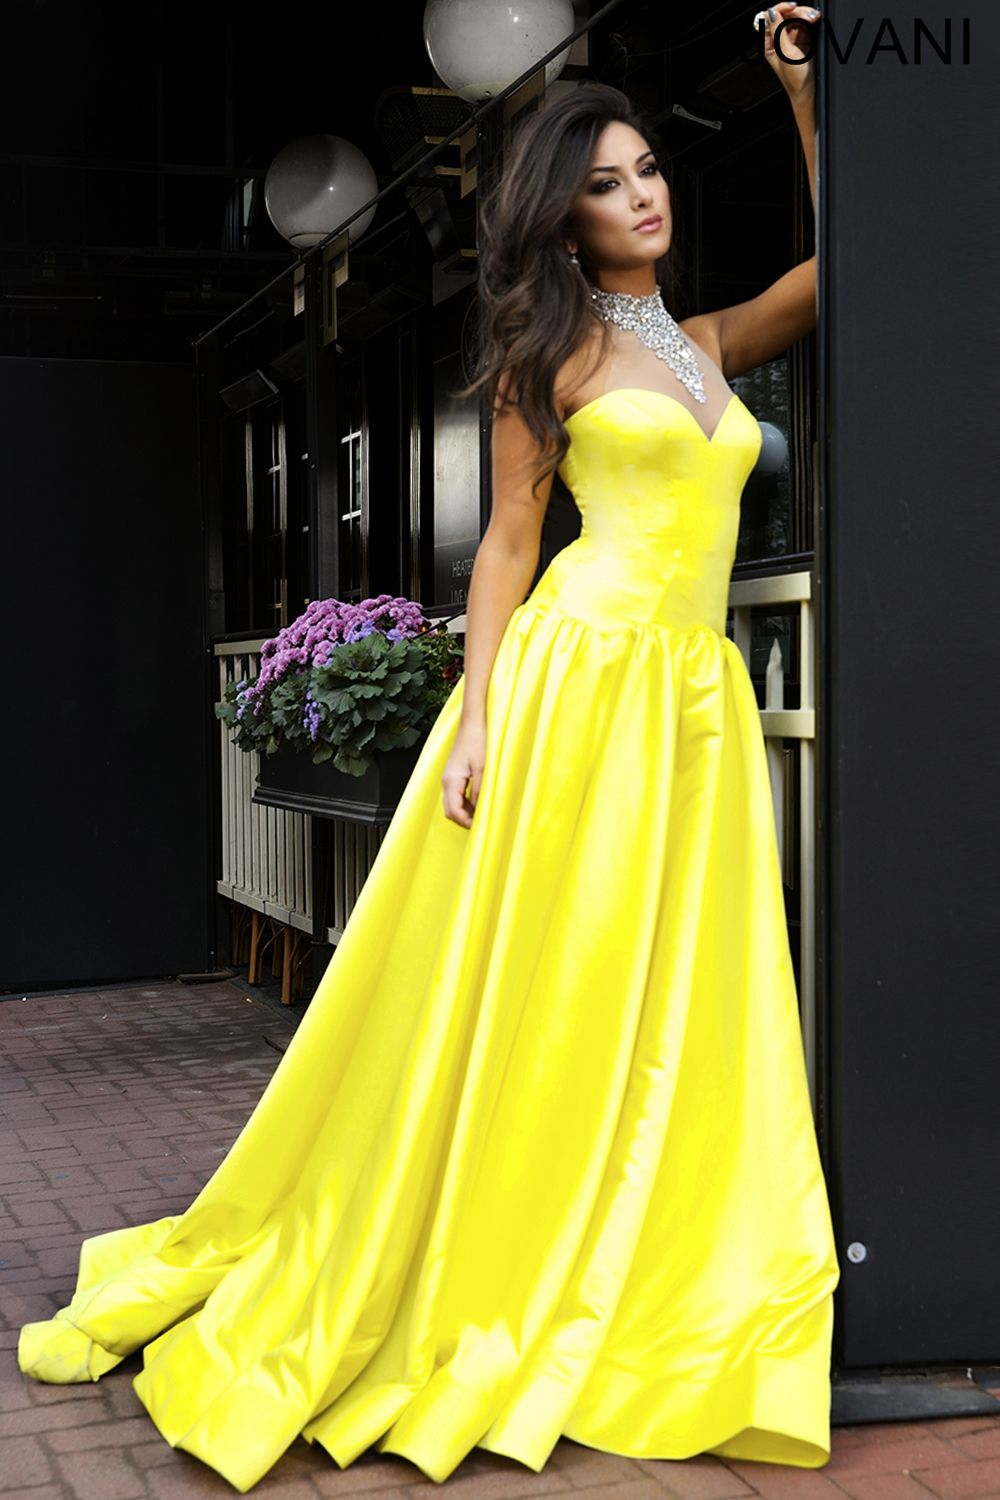 Satin Halter Dress 20595   Crown Worthy Pageant Gowns   Dresses, Pageant dresses, Satin cocktail dress